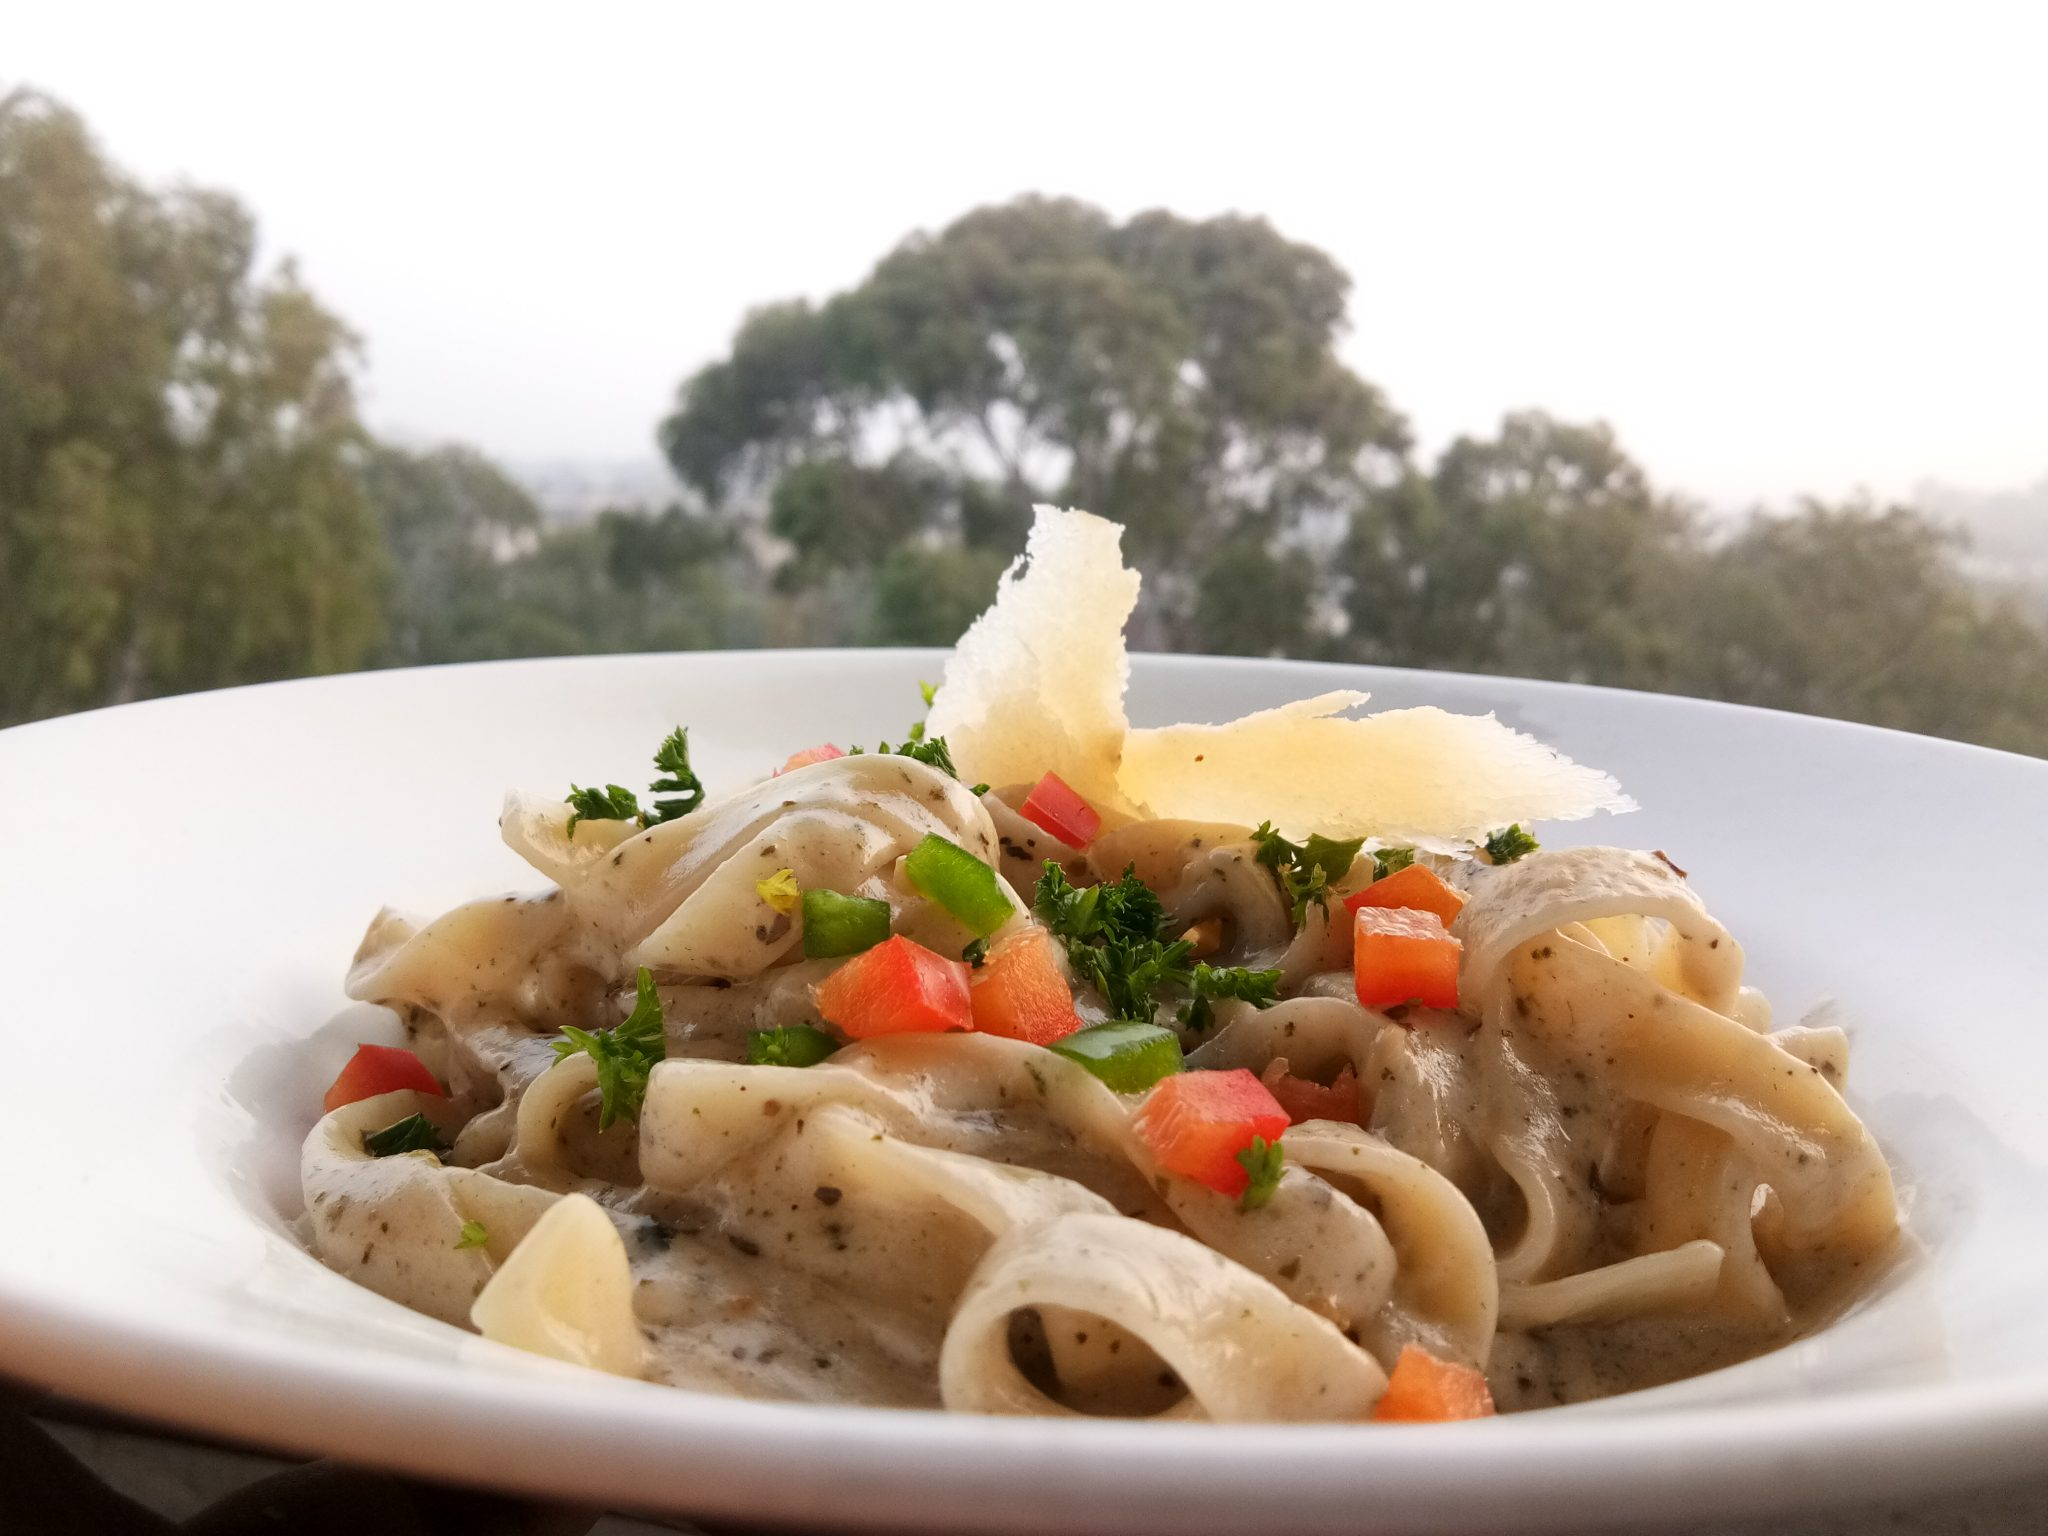 Recipe of tagliatelle pasta